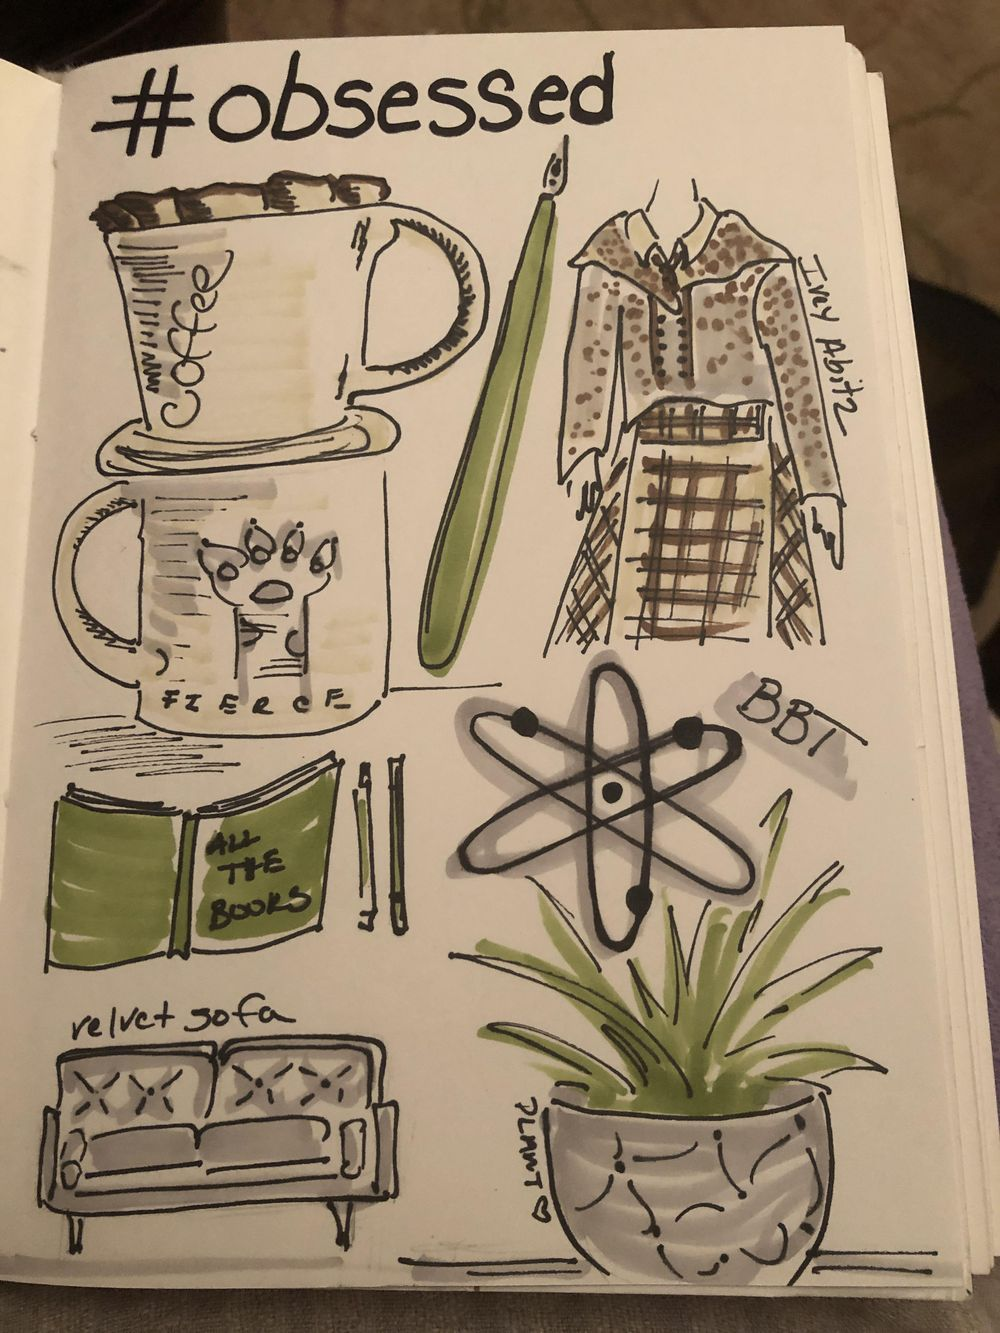 14 days of illustrated journal prompts - image 10 - student project